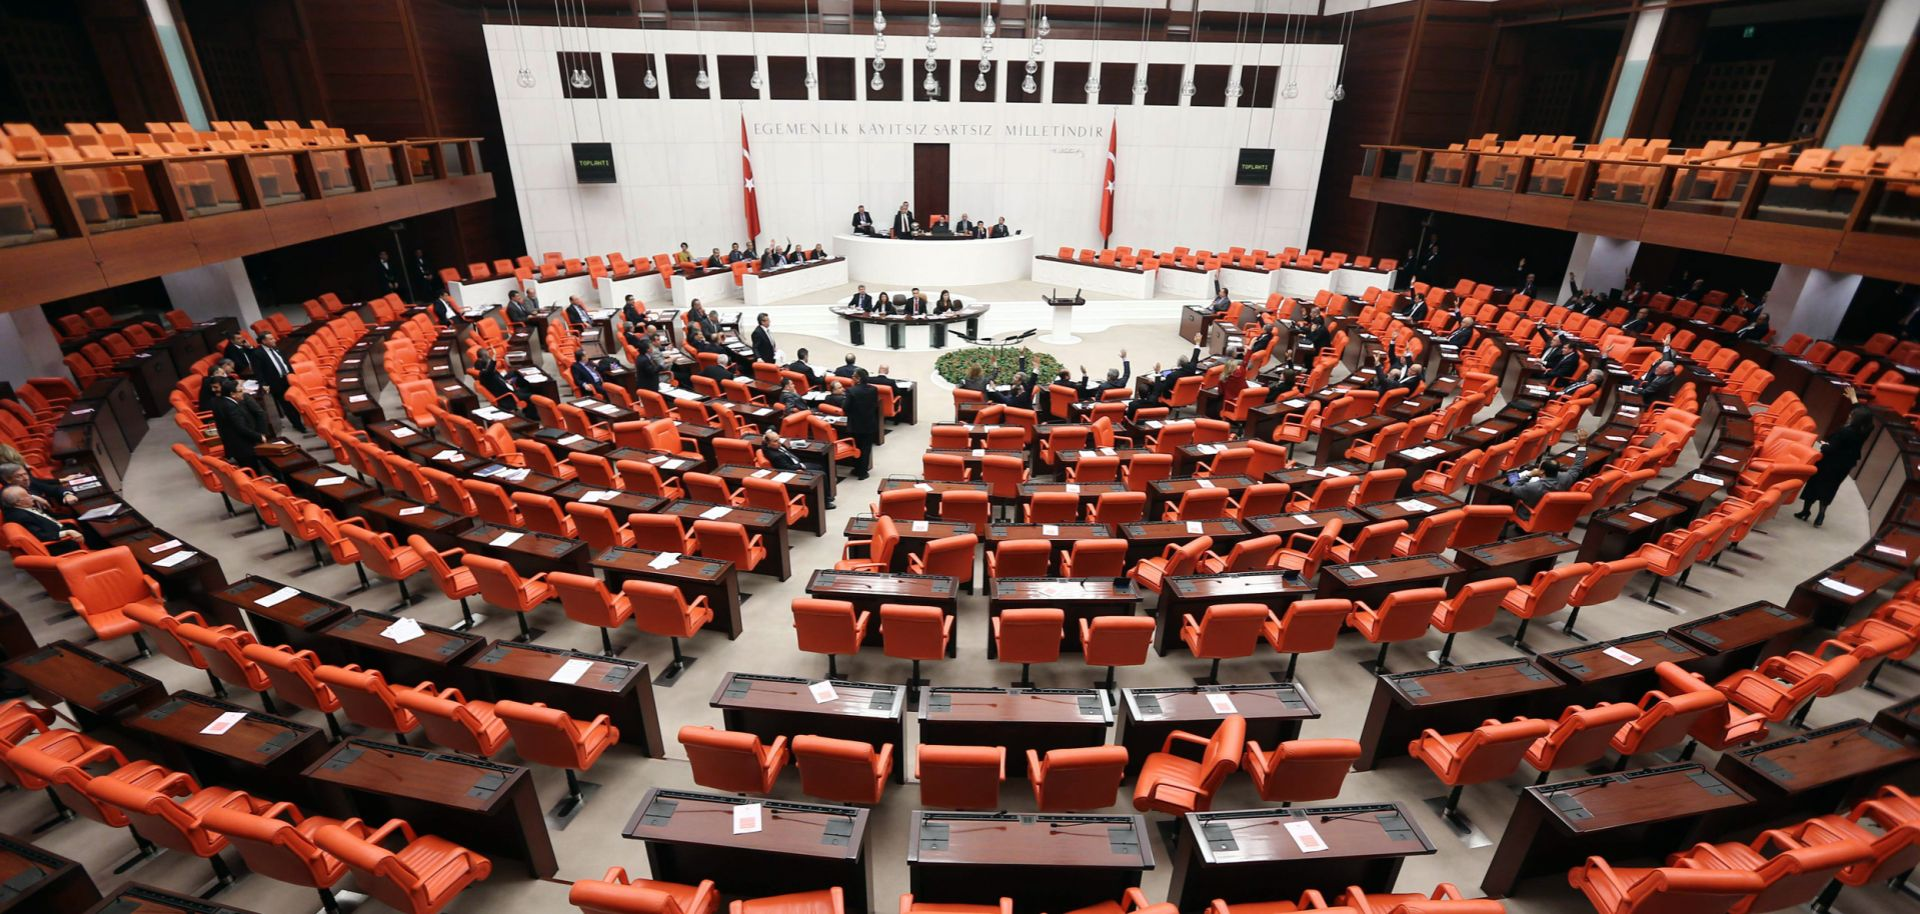 Lawmakers discuss a new law in Turkey's parliament in Ankara on Feb. 5, 2014.